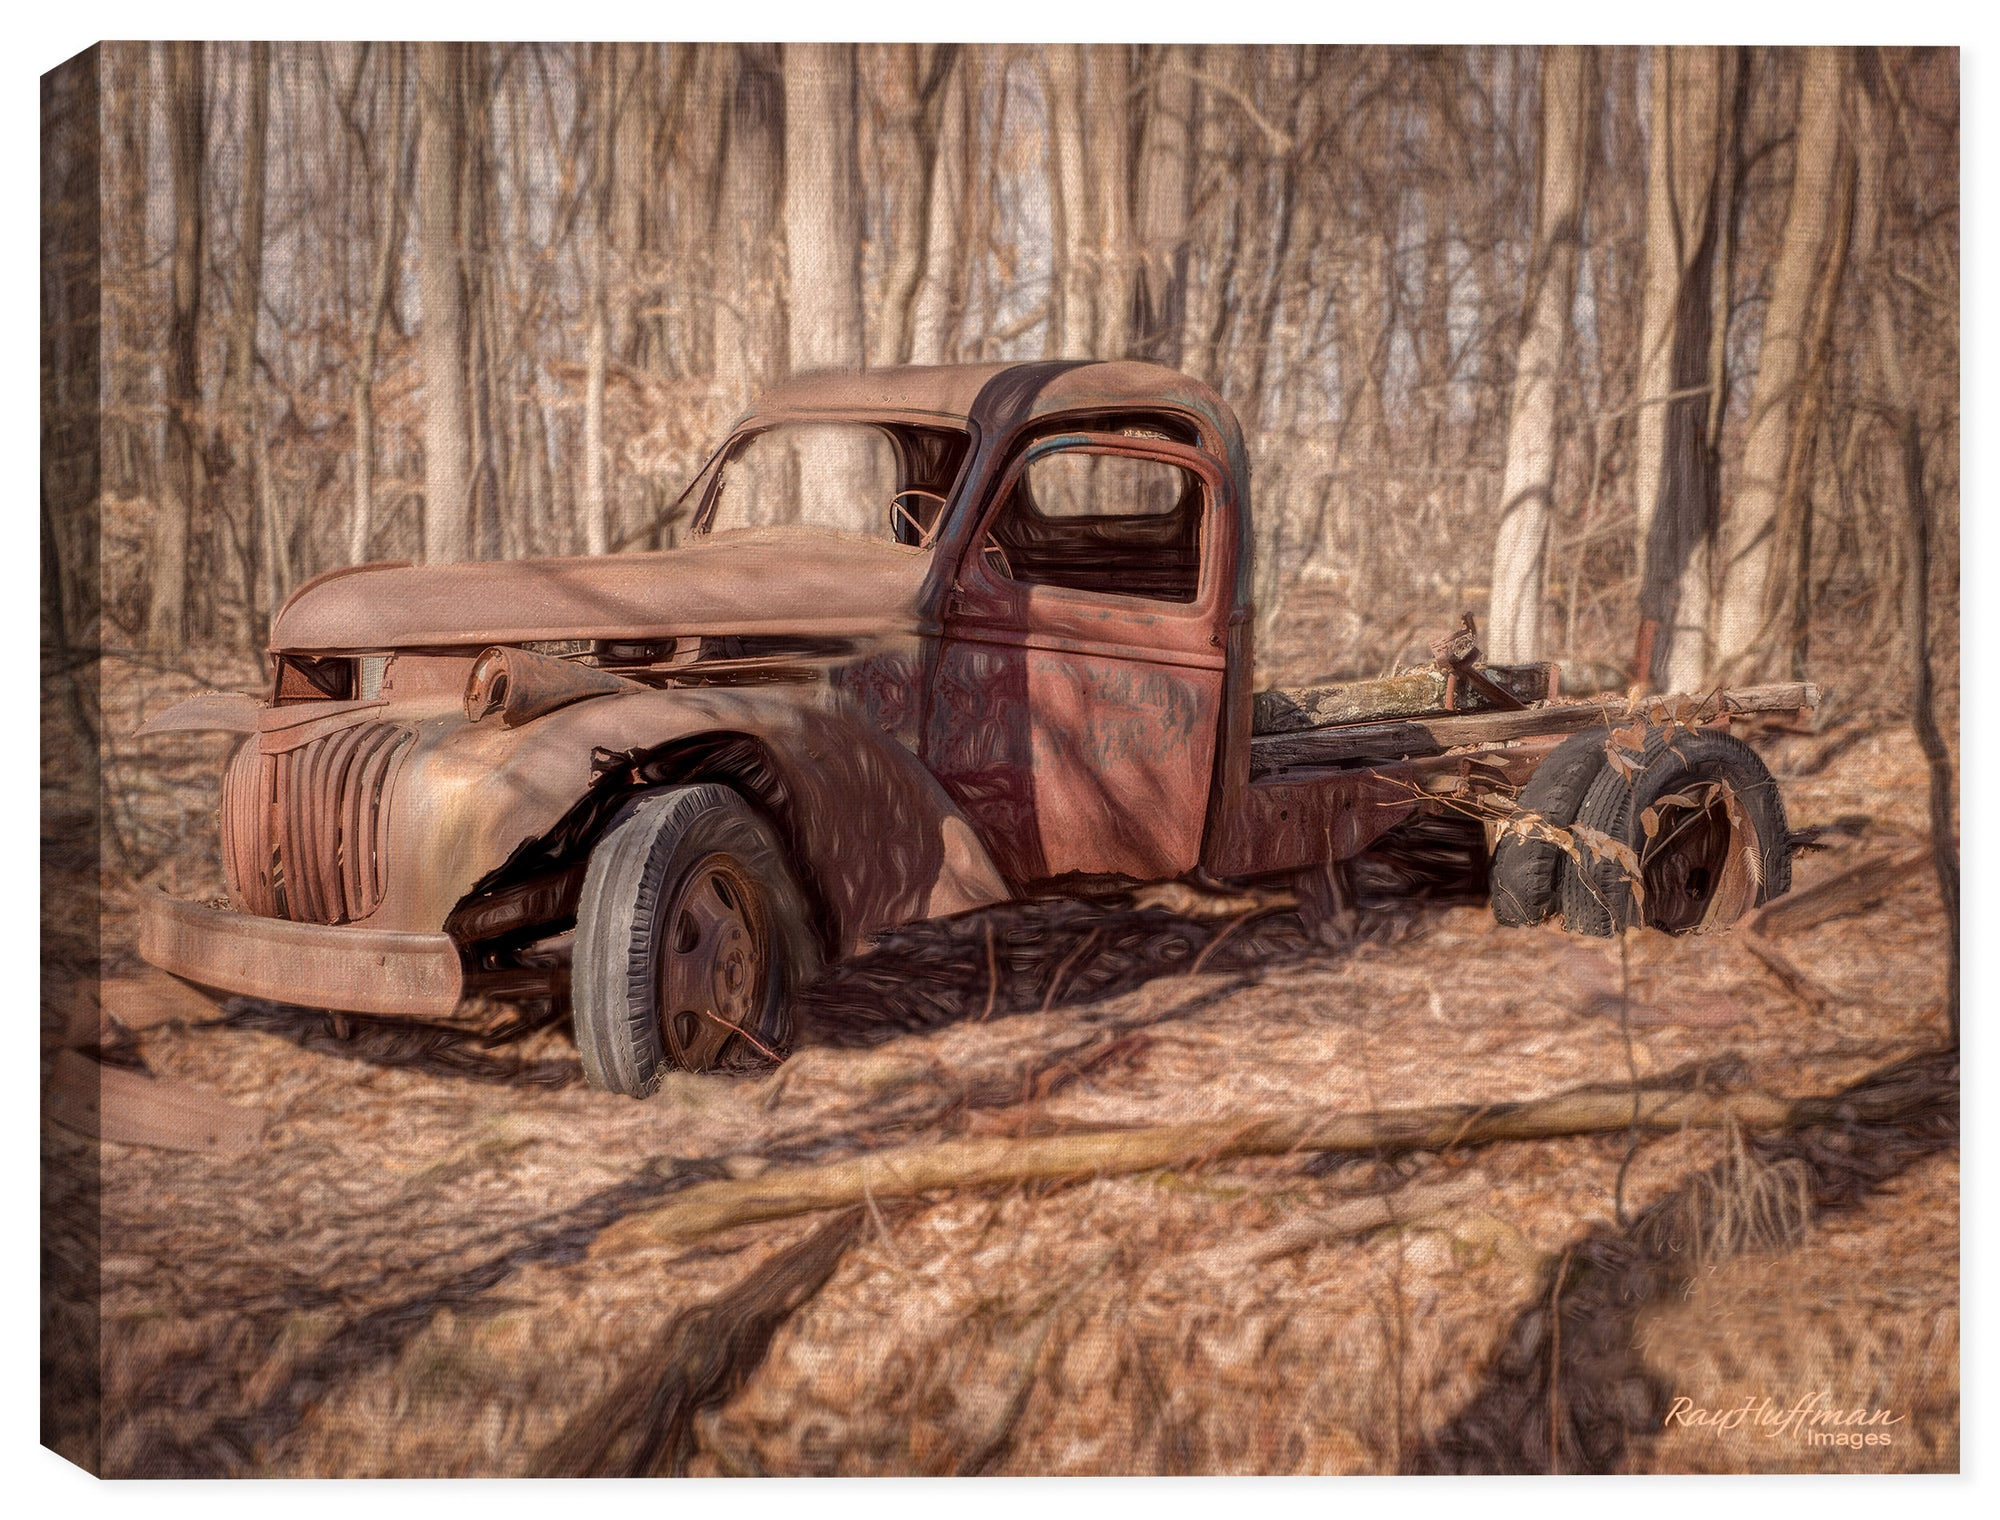 Abandoned - Vintage Truck deep in the Woods